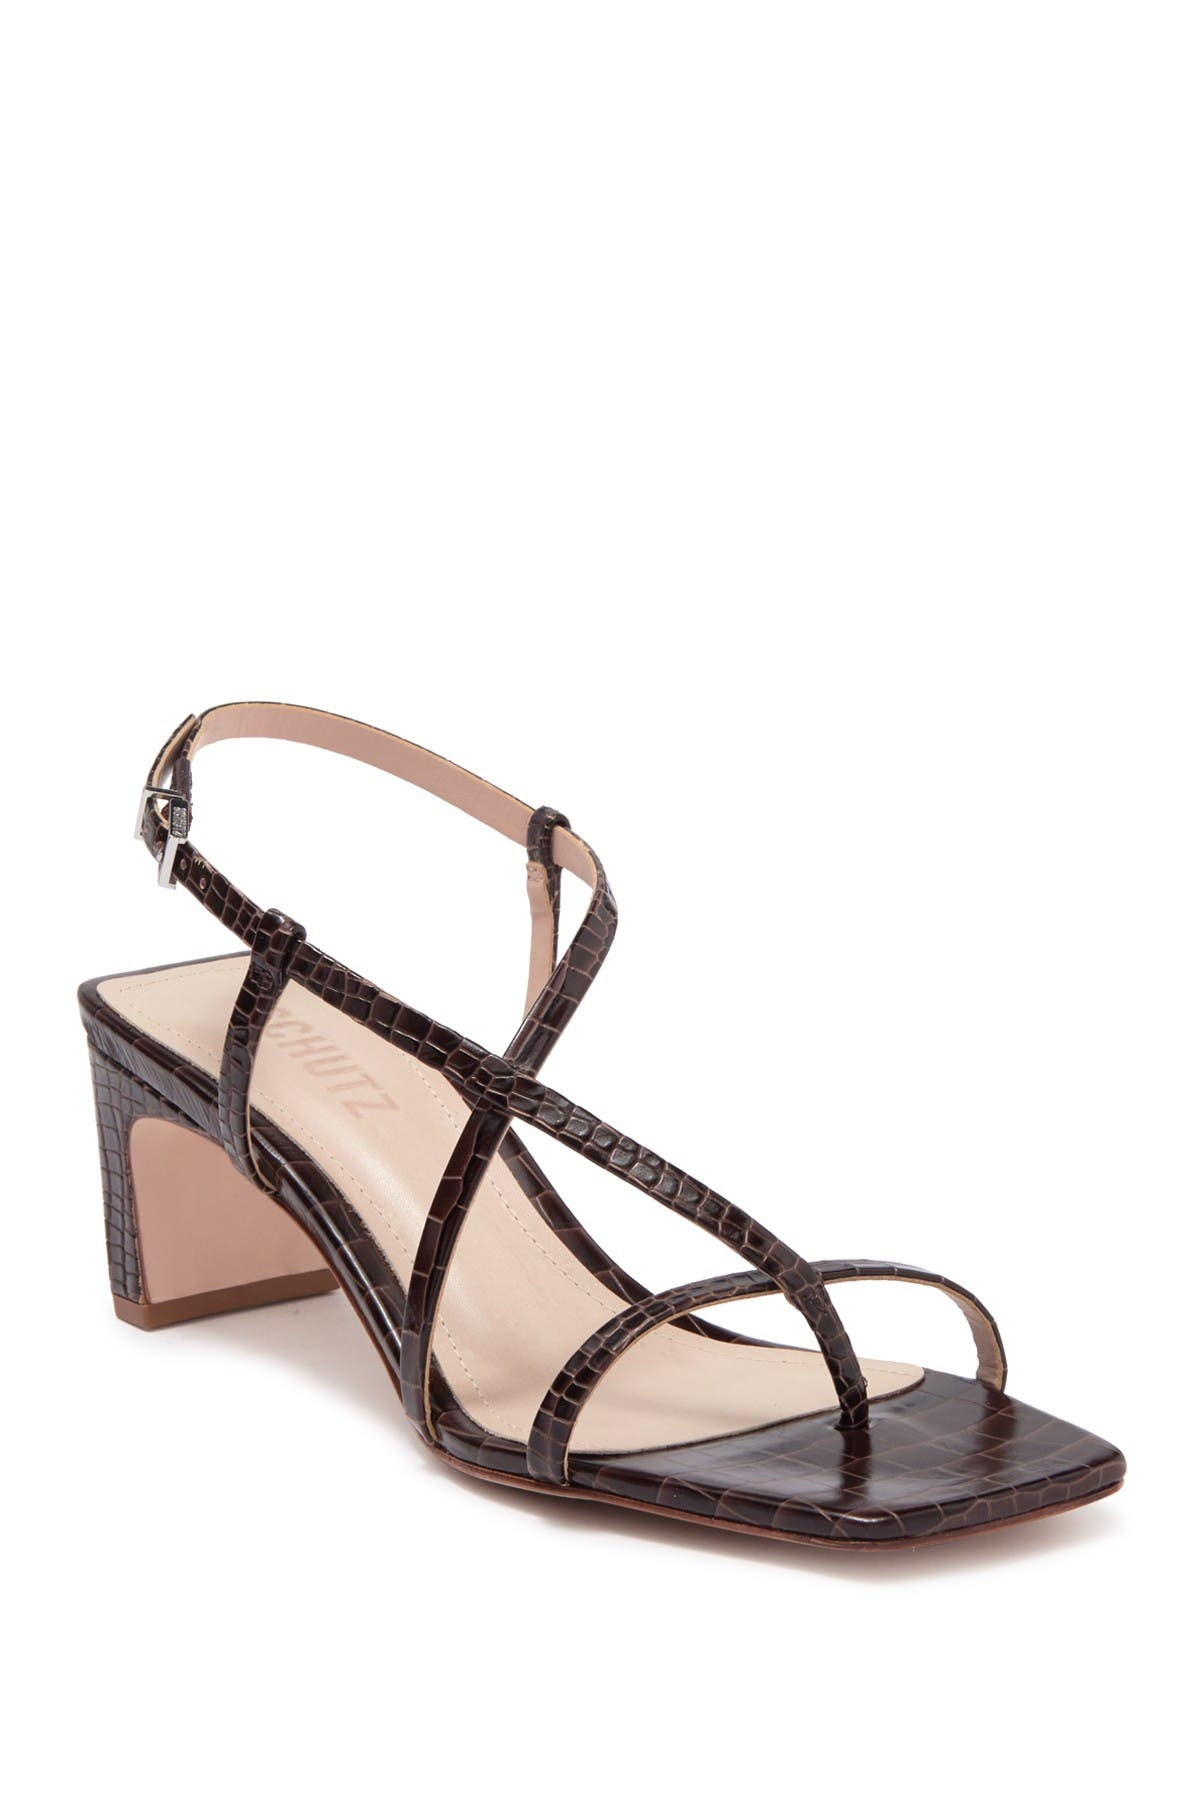 Image of Schutz Kagenia Snakeskin Embossed Strappy Leather Sandal